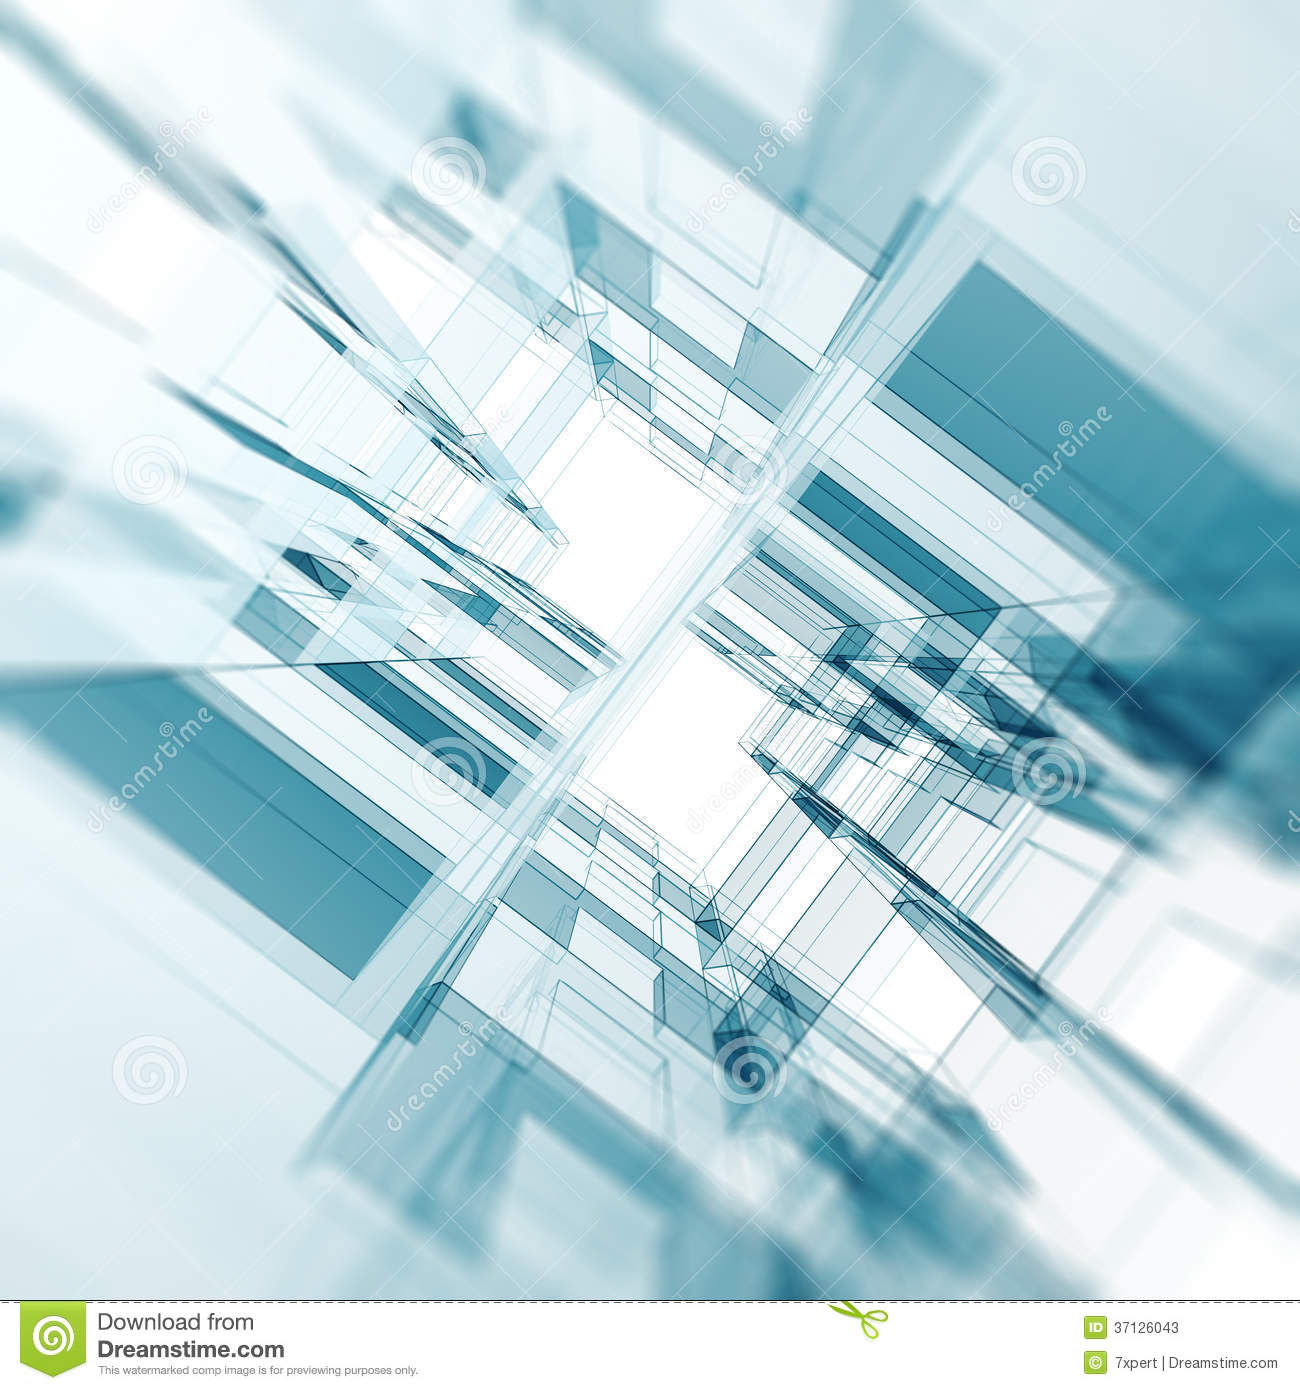 Abstract architecture background. Architecture design and model my own ...